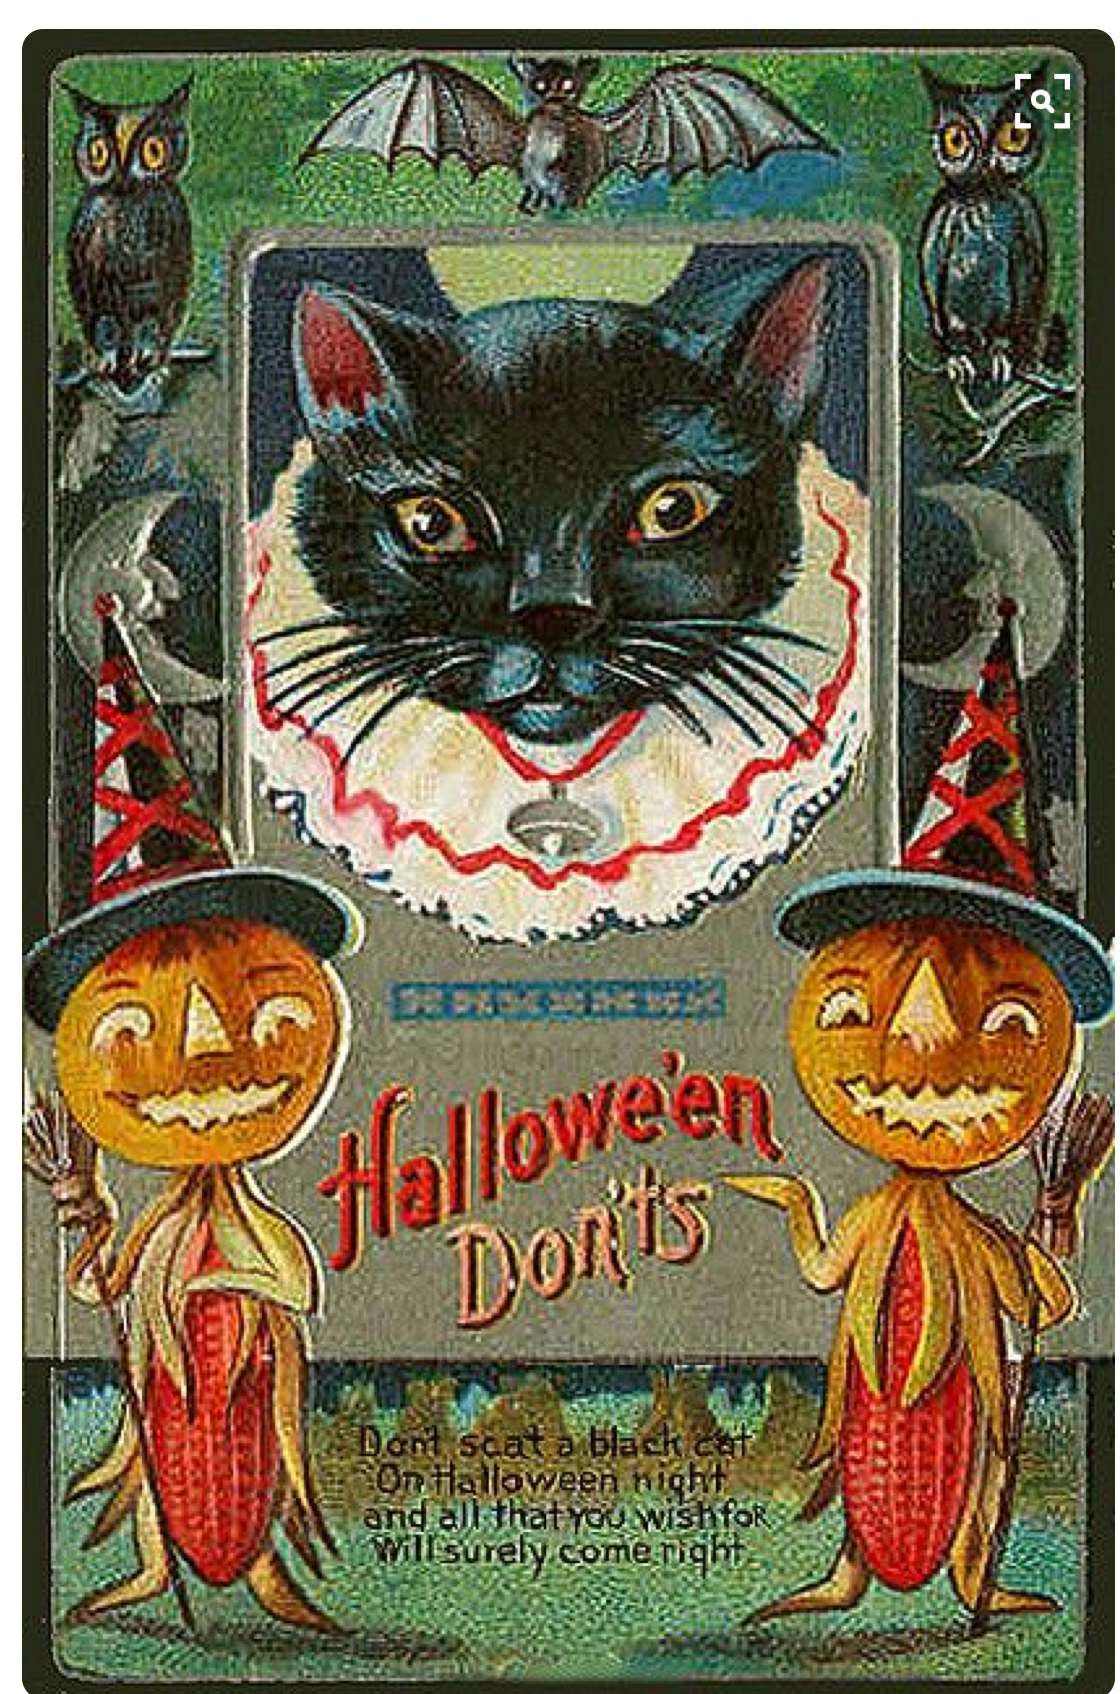 Pin by Ed Derwent on Halloween Postcards and Novelties